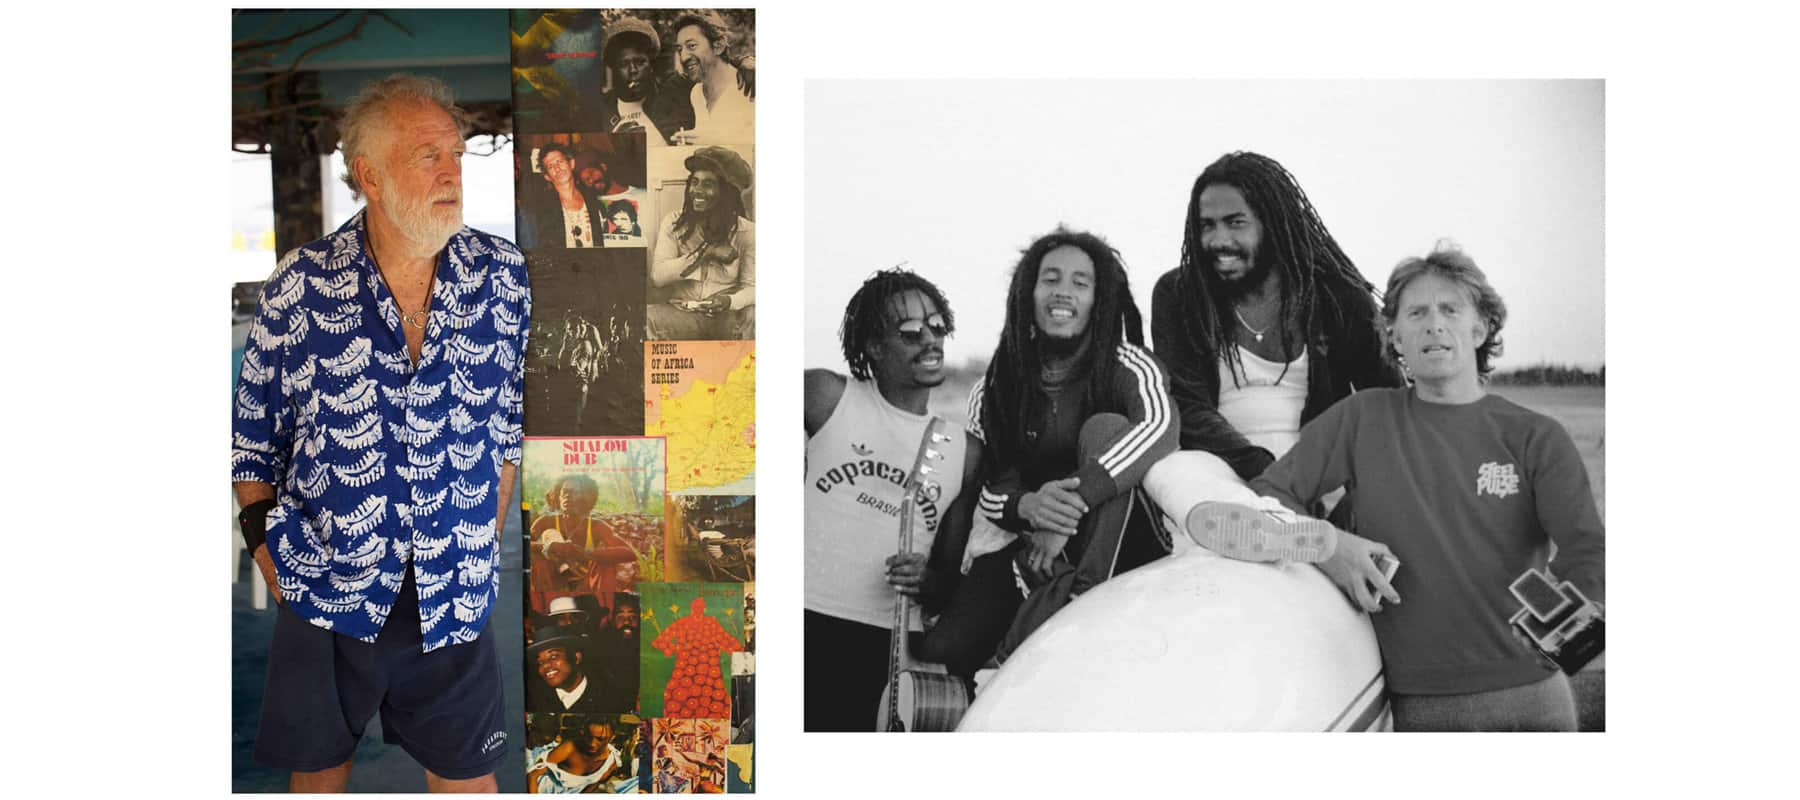 Left: a color photograph of Chris Blackwell standing next to a wall covered with photos of Bob Marley. Right: a black-and-white photograph of Junior Marvin, Bob Marley, Jacob Miller and Chris Blackwell in Brazil in 1980.